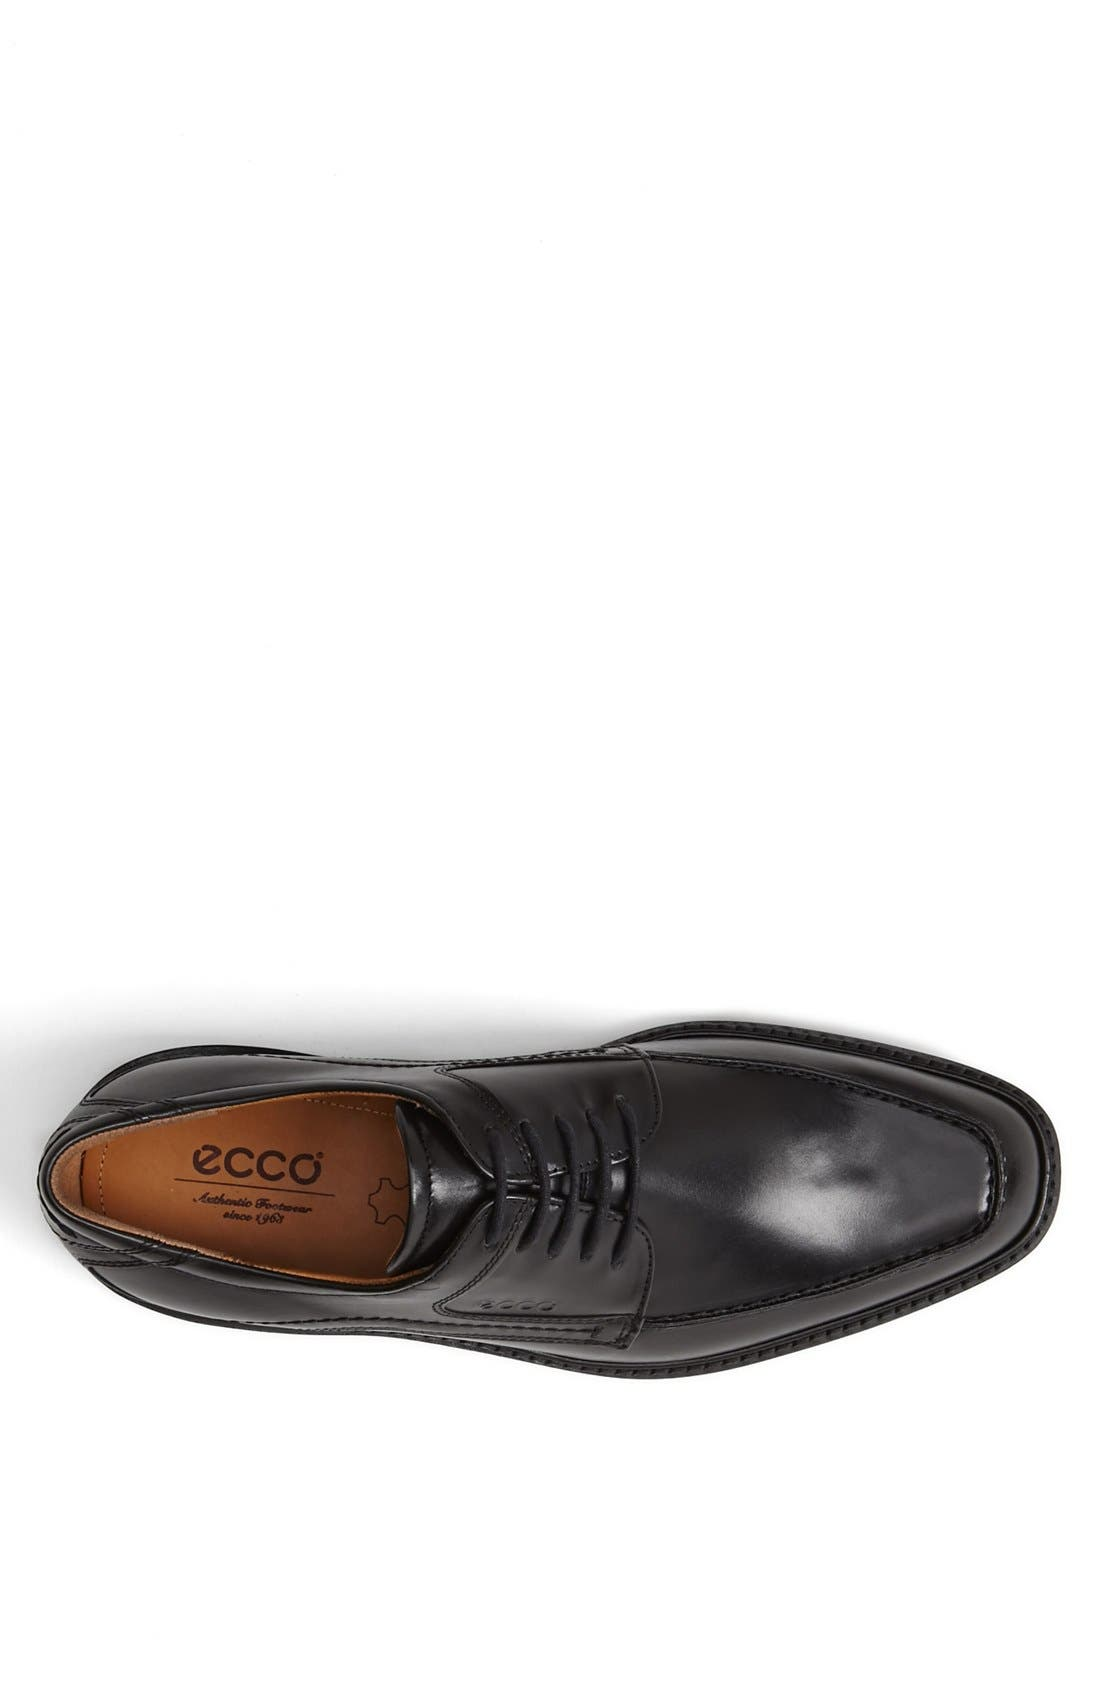 Alternate Image 3  - ECCO 'Windsor' Apron Toe Derby (Men)